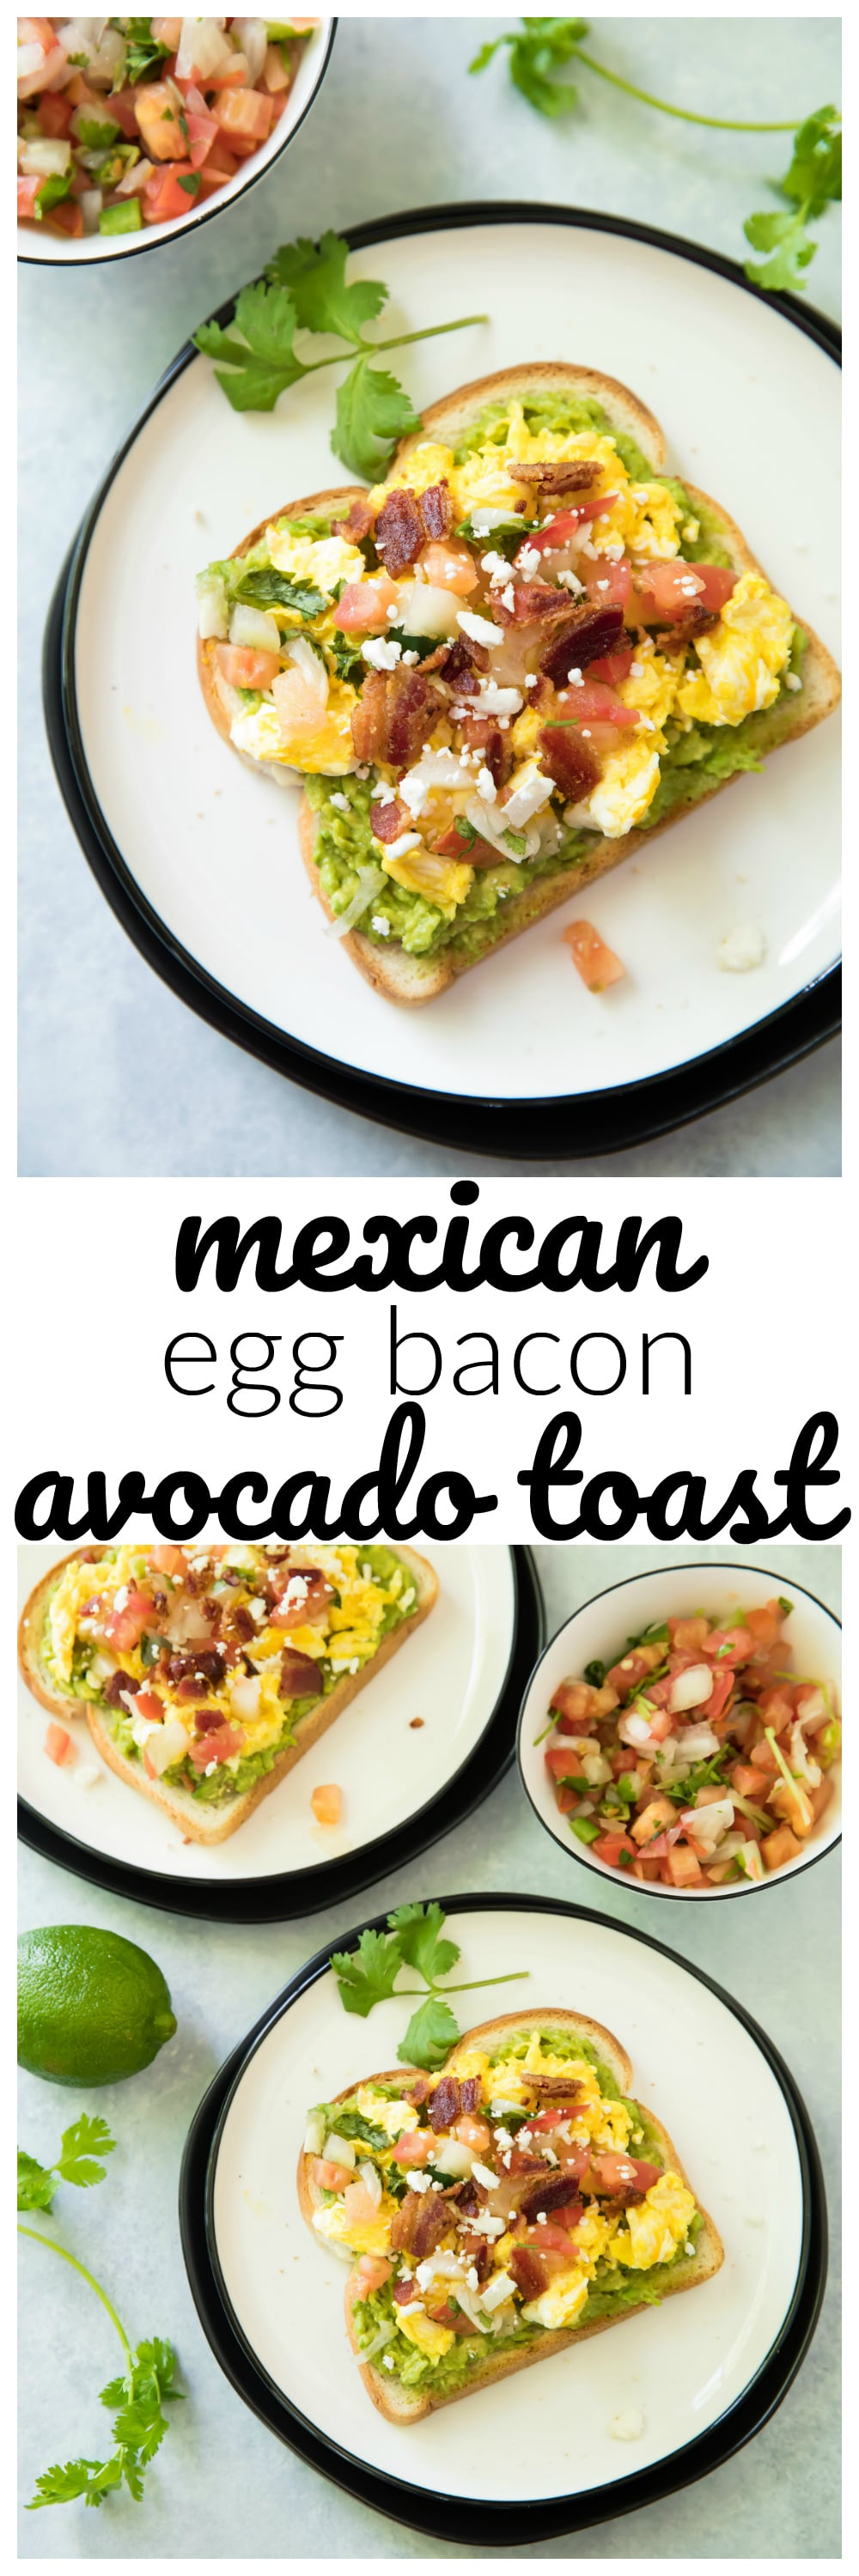 This Mexican Egg Bacon Avocado Toast is simply one of the best breakfast solutions of all time. It's made in less than 10 min from start to finish, and is super delicious with endless options. Have you jumped on the avocado toast bandwagon? Yes? Well, enjoy my favorite avocado toast recipe idea!